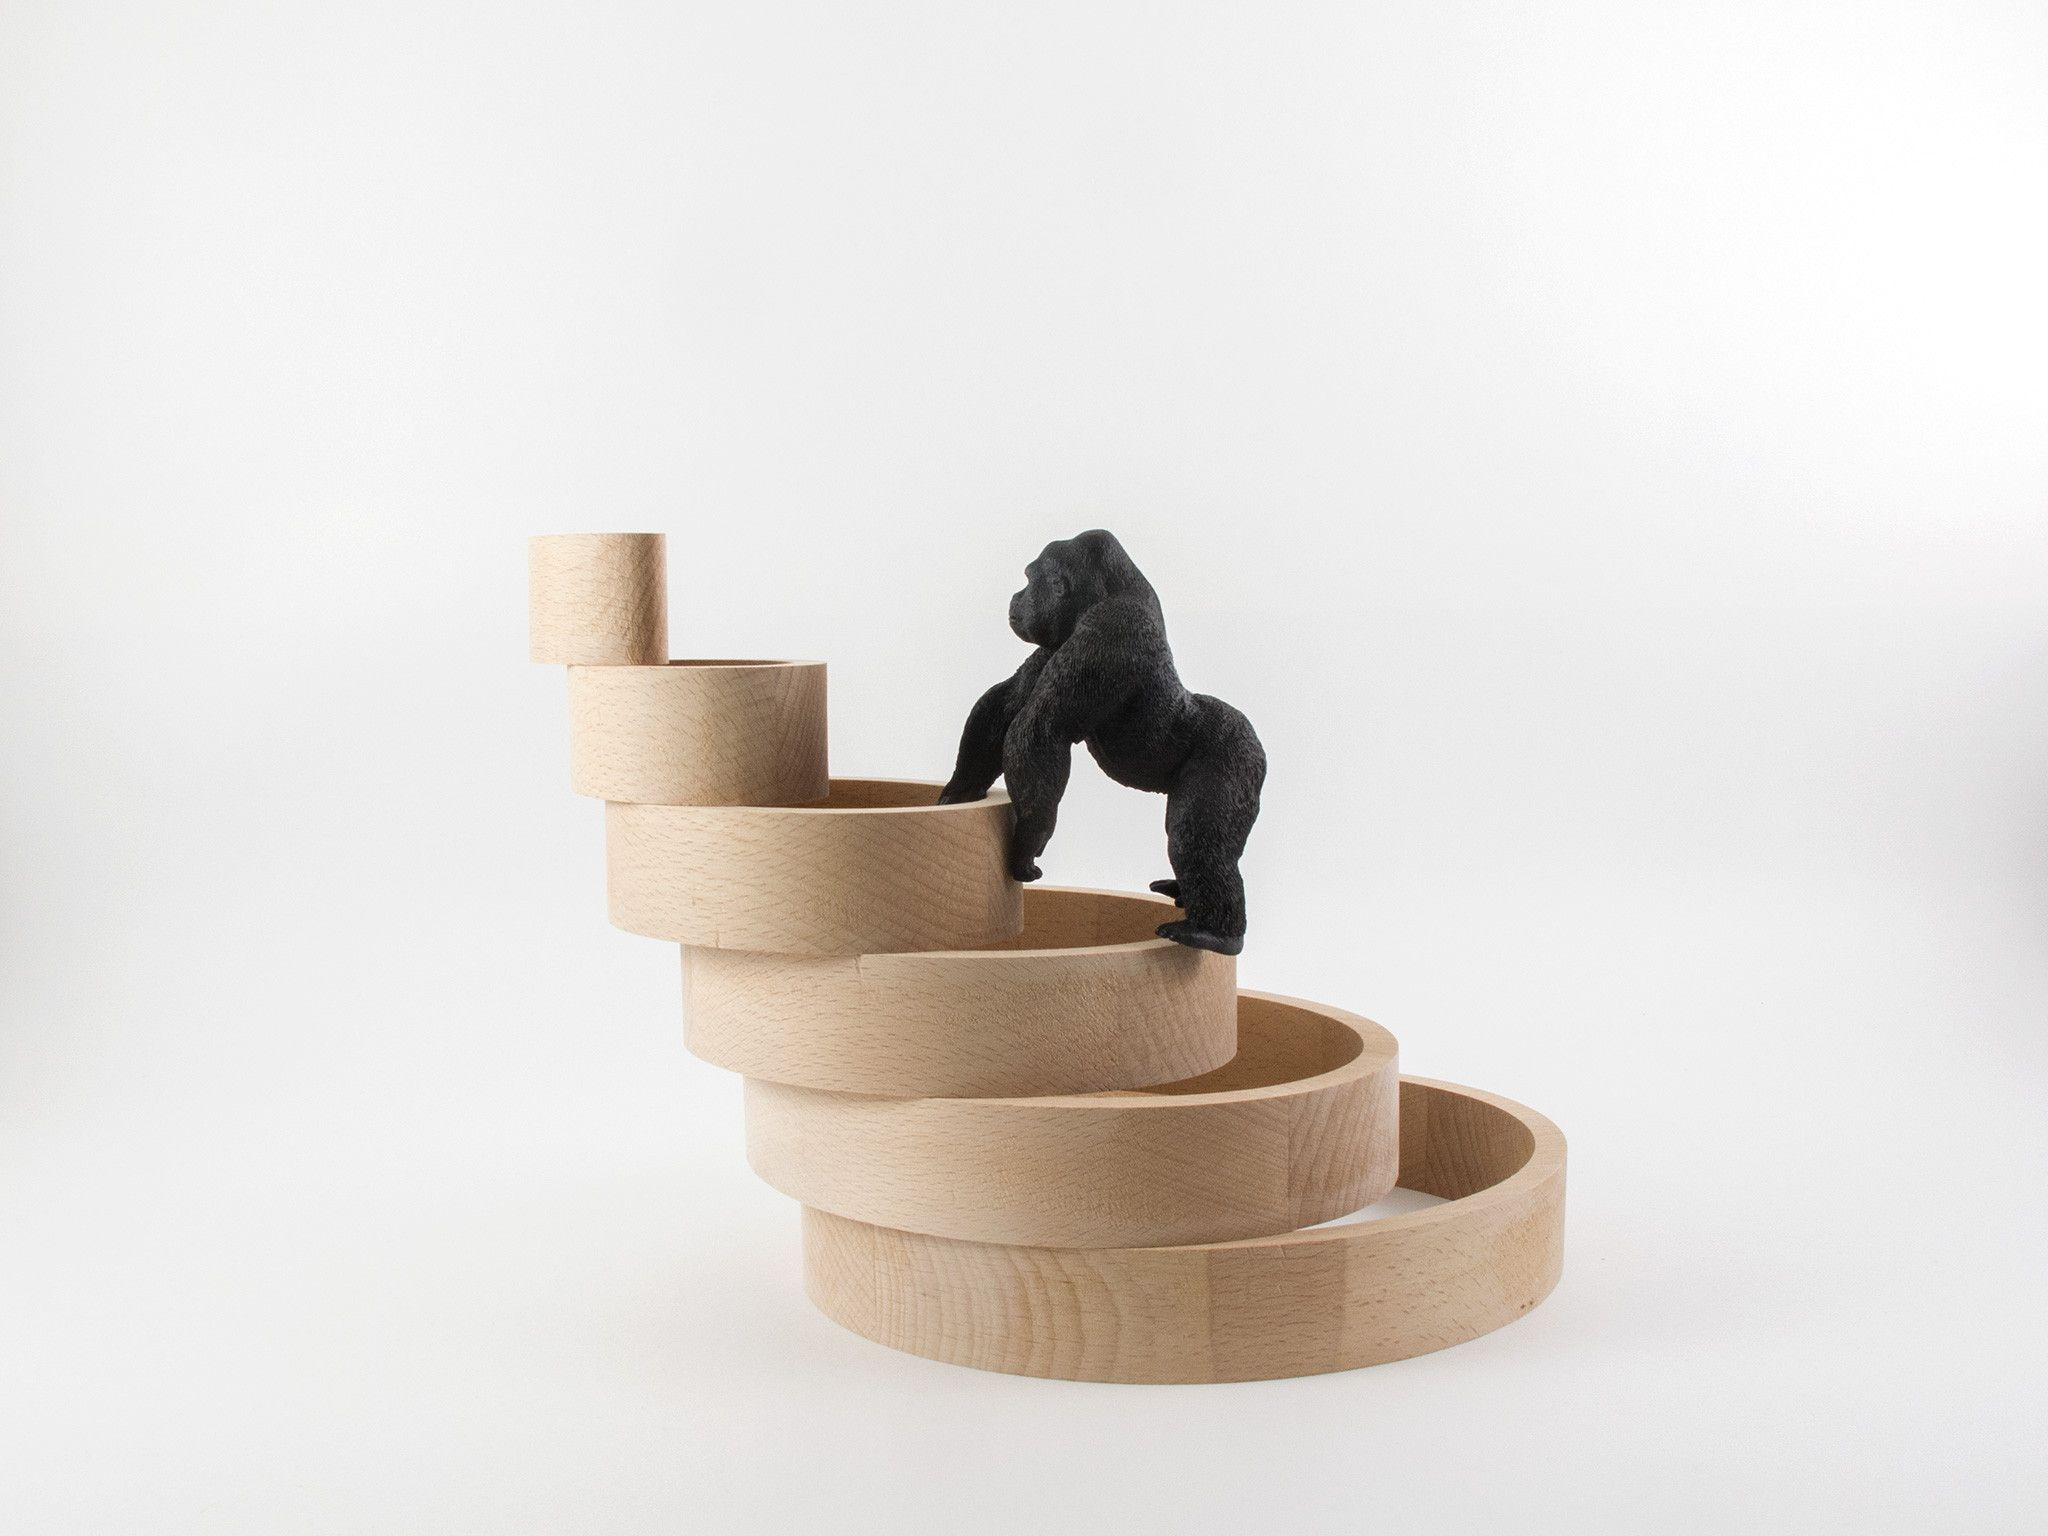 Offfset One Conversation piece. You can move and play it for relax your mind. Based in ellipse shape. http://amordemadre.com